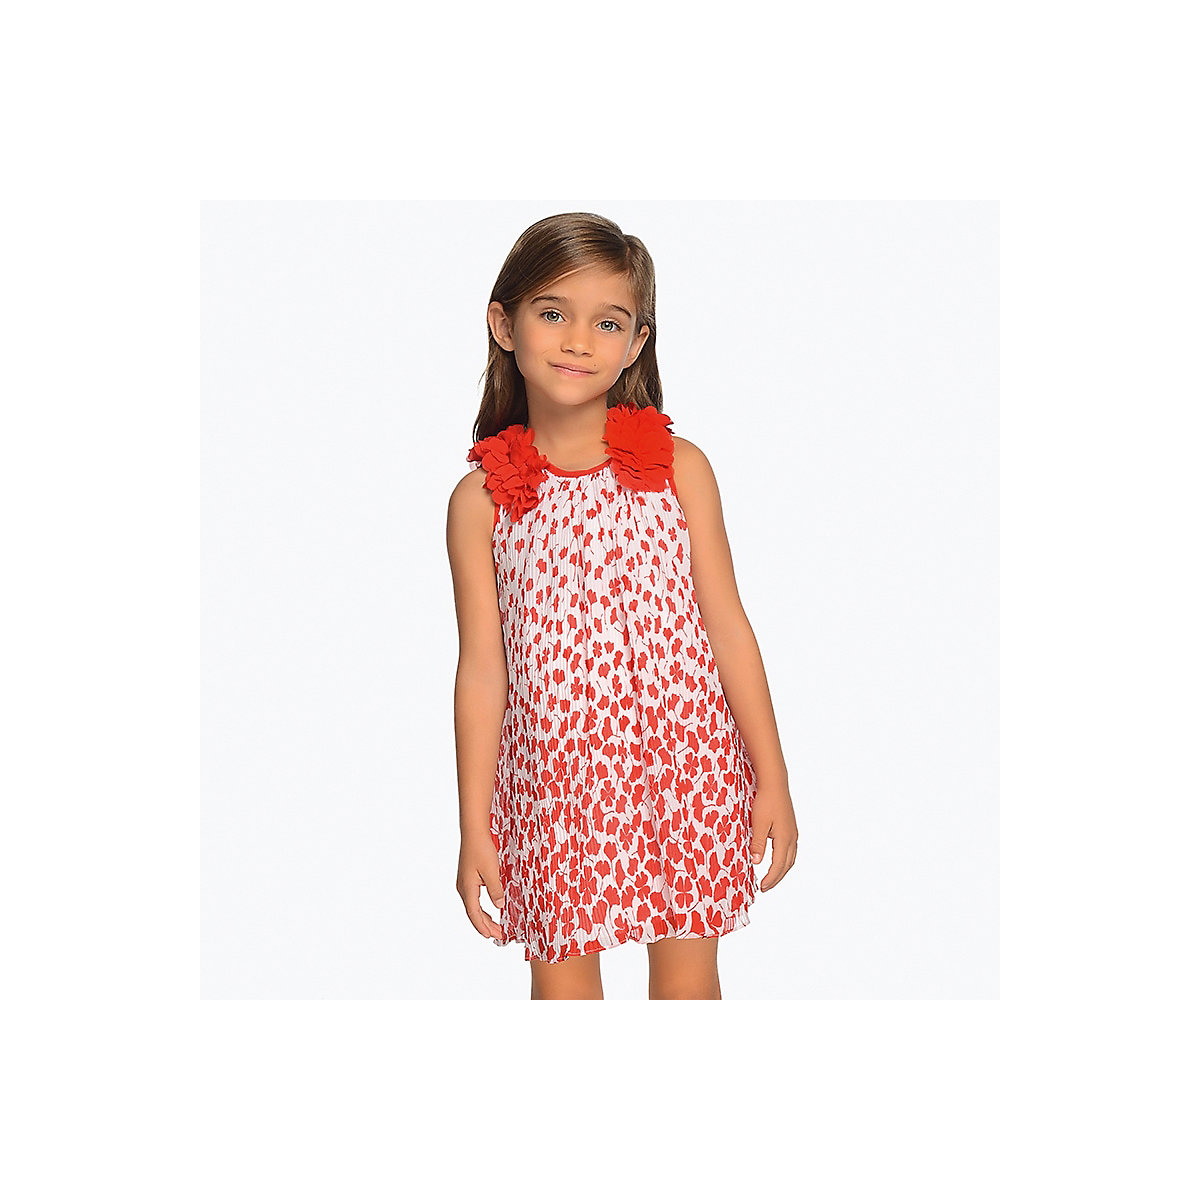 MAYORAL Dresses 10685281 Girl Children Party fitted pleated skirt Red Polyester Preppy Style Print Knee-Length Sleeveless Sleeve girl print drawstring top